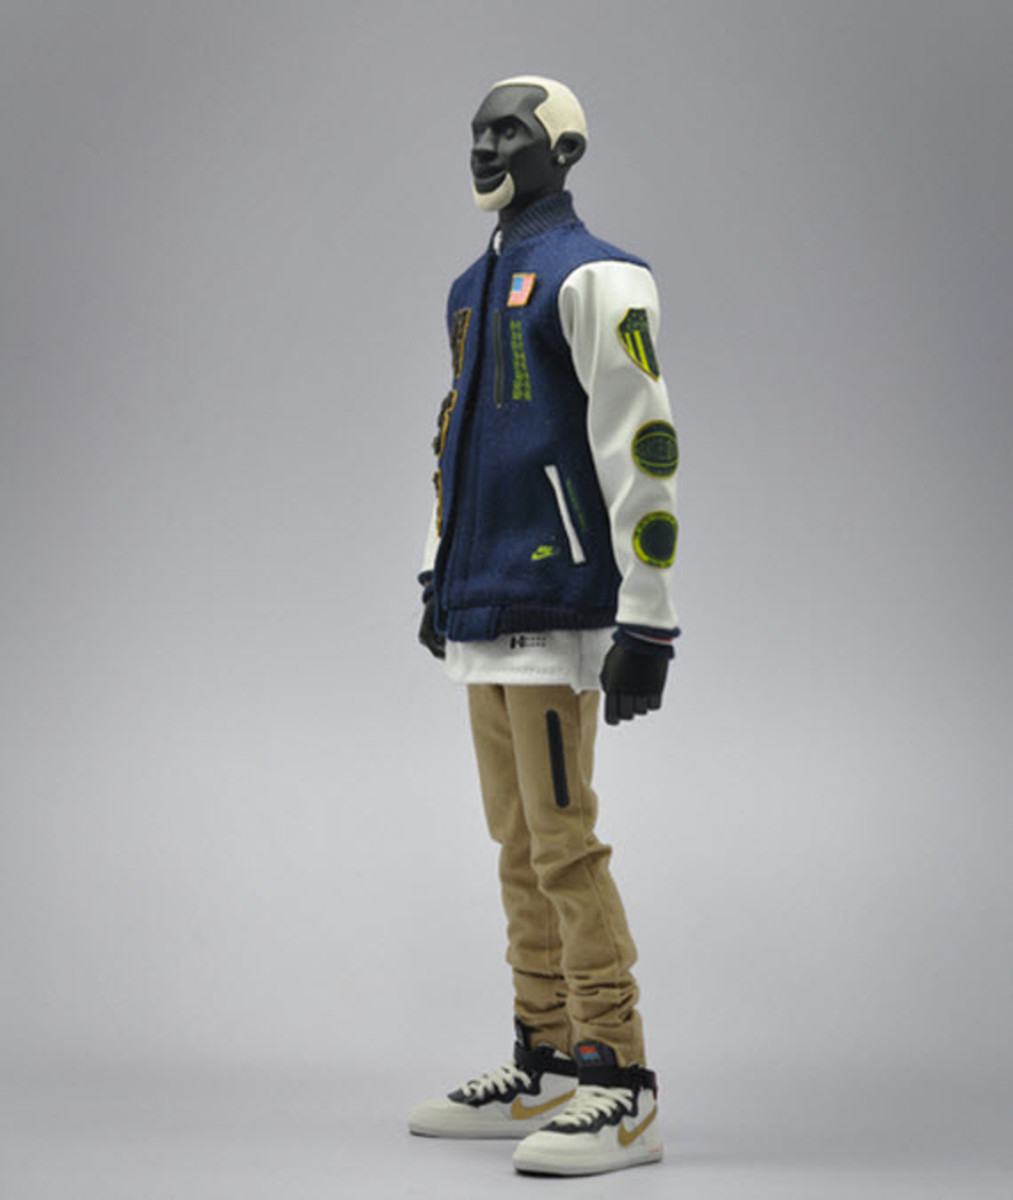 nike-sportswear-x-coolrain-relive-the-dream-dream-team-figures-9